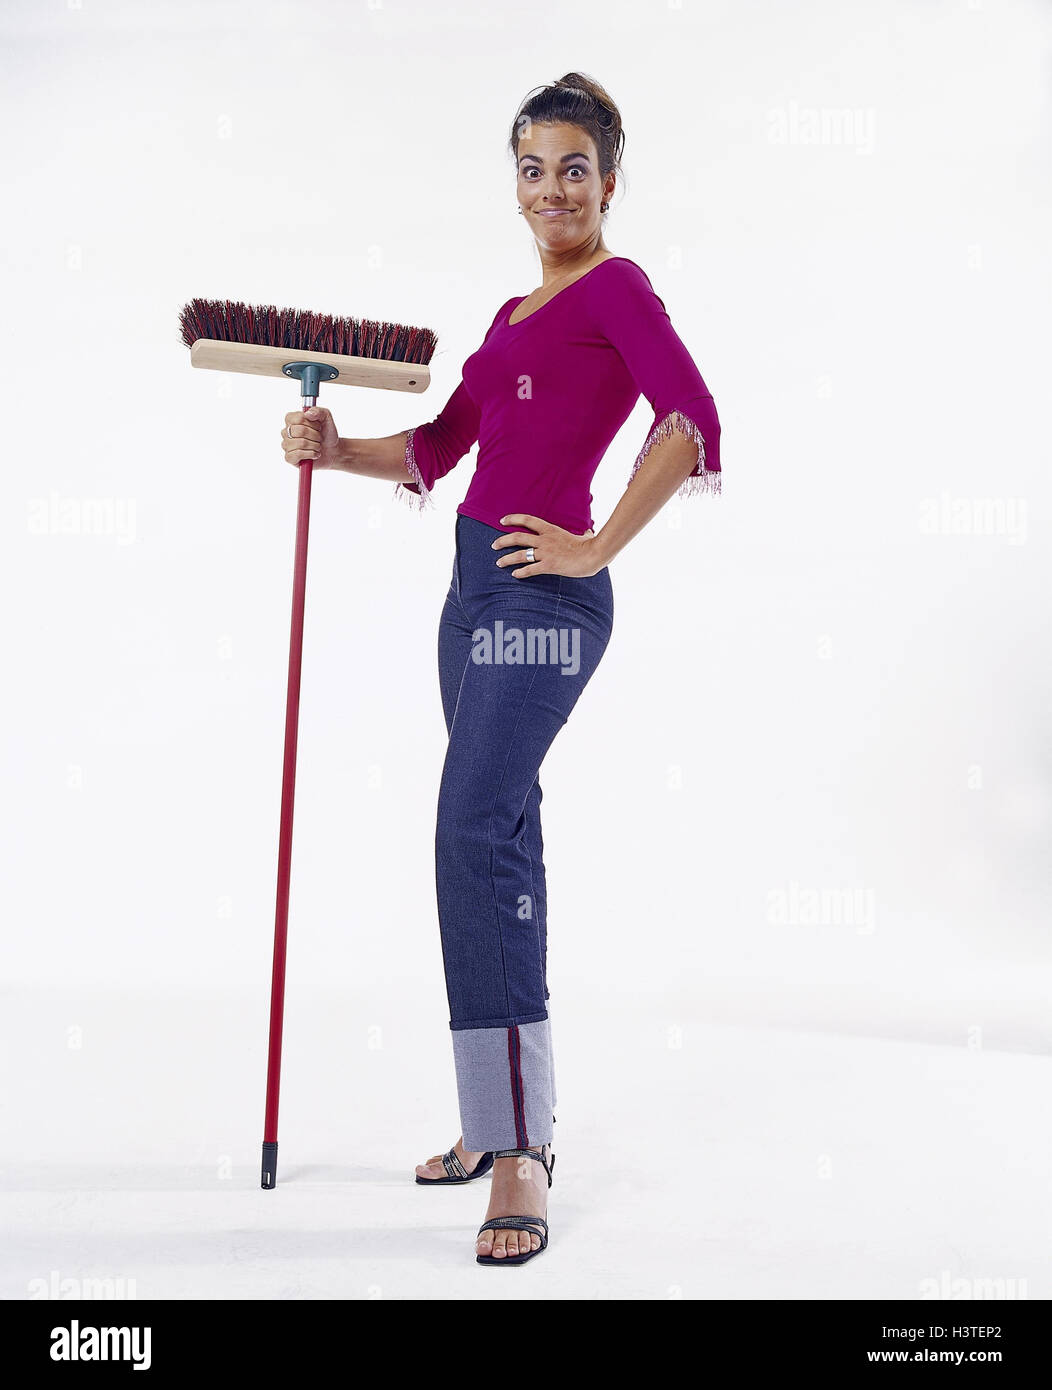 Woman, young, brooms, gesture, energetically, decided, grab women, housewife, vigorously, clean unerringly, determination, - Stock Image